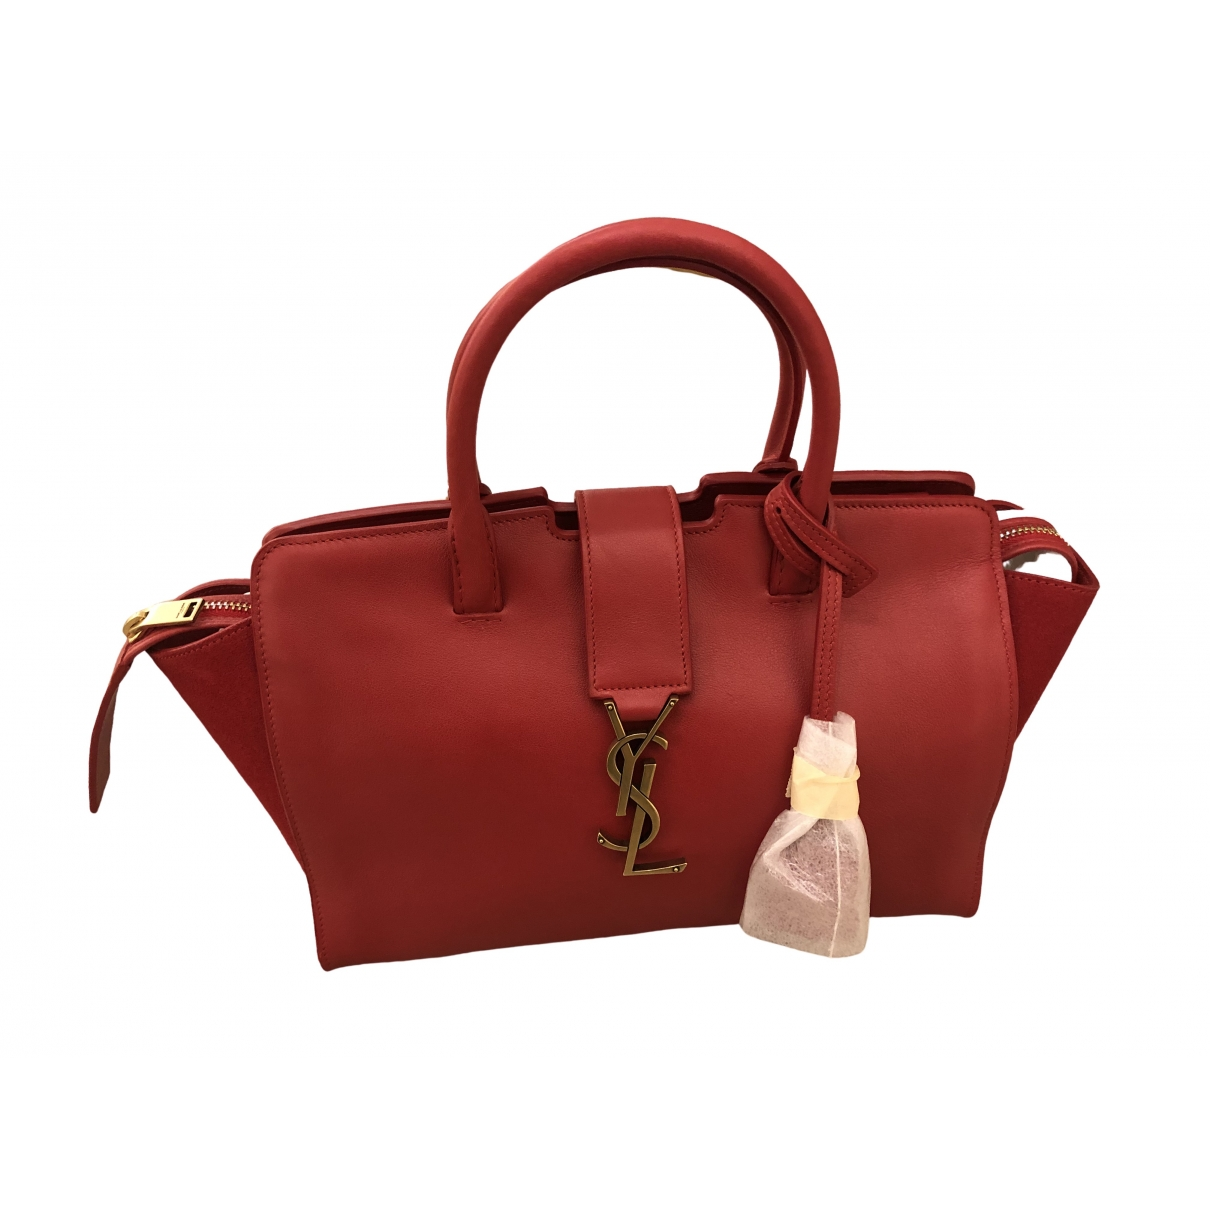 Saint Laurent Cabas Toy Red Leather handbag for Women \N